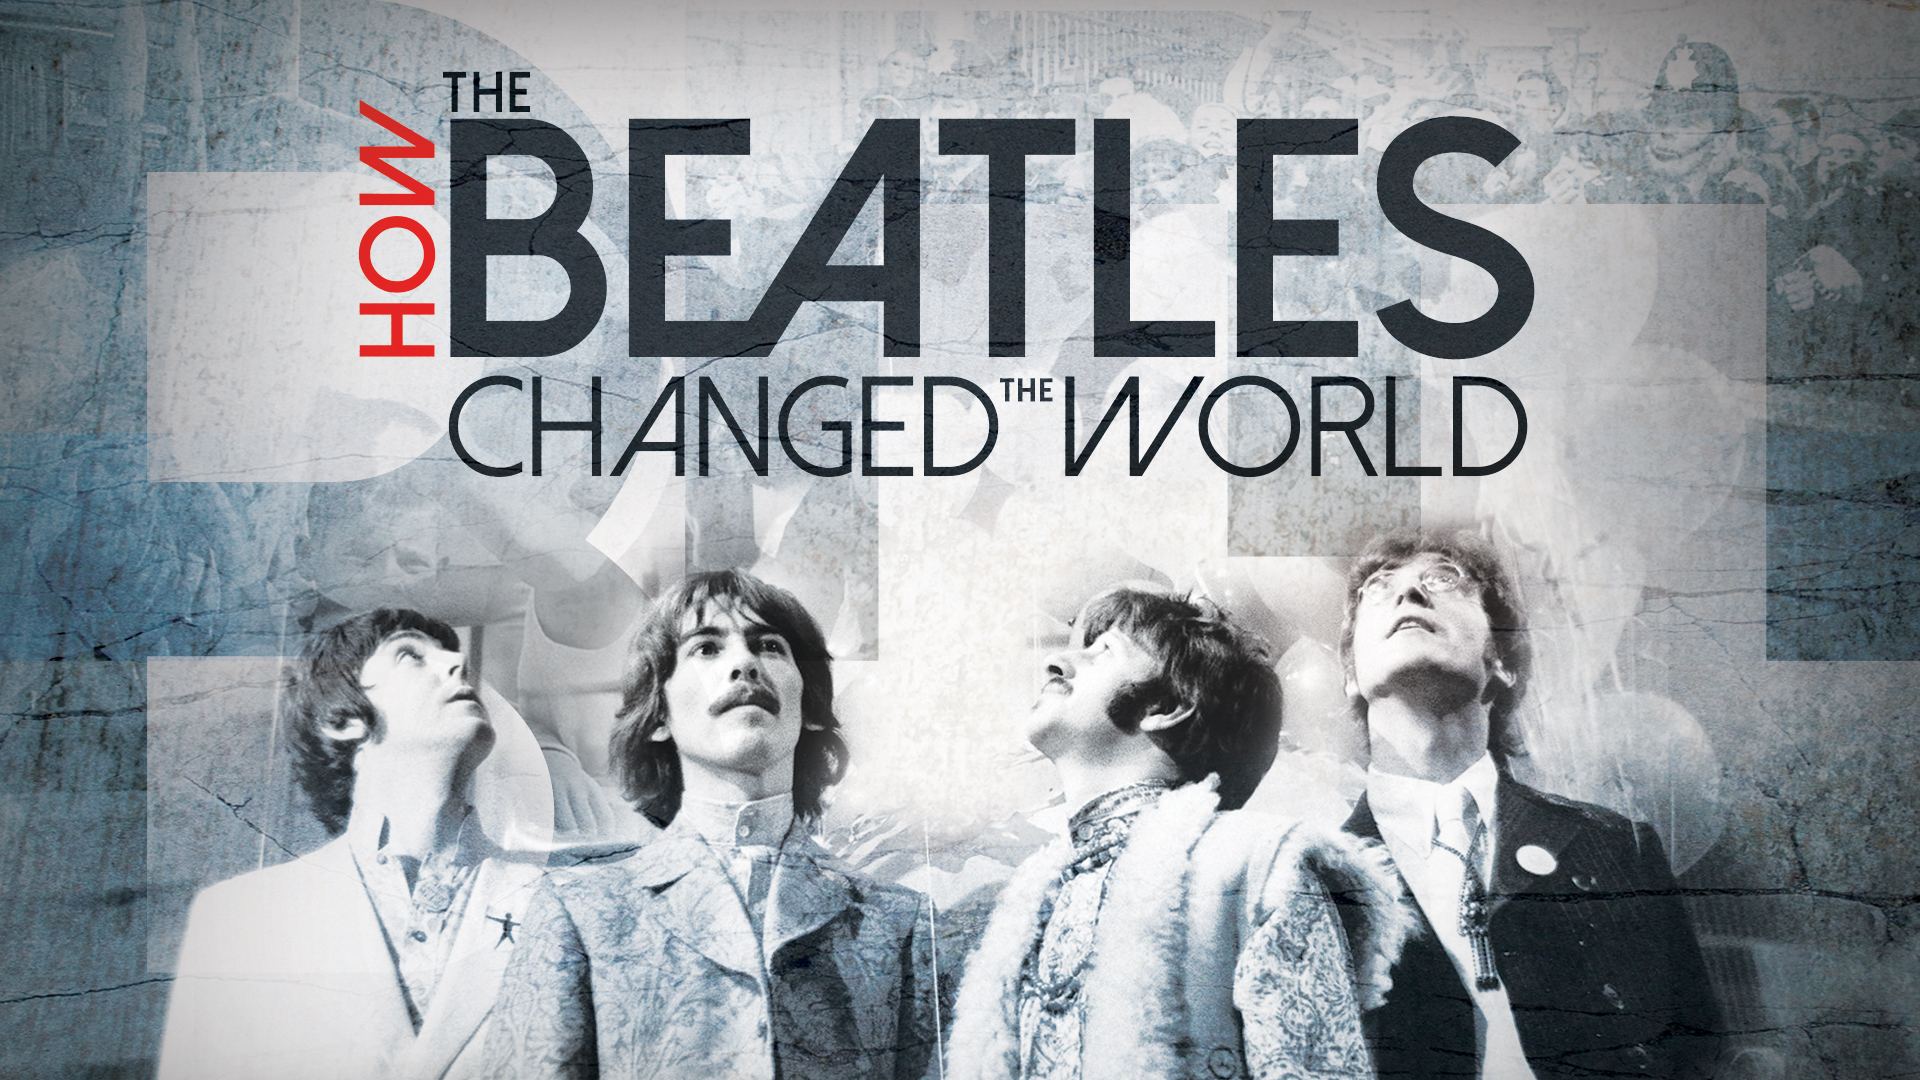 How the Beatles Changed the World